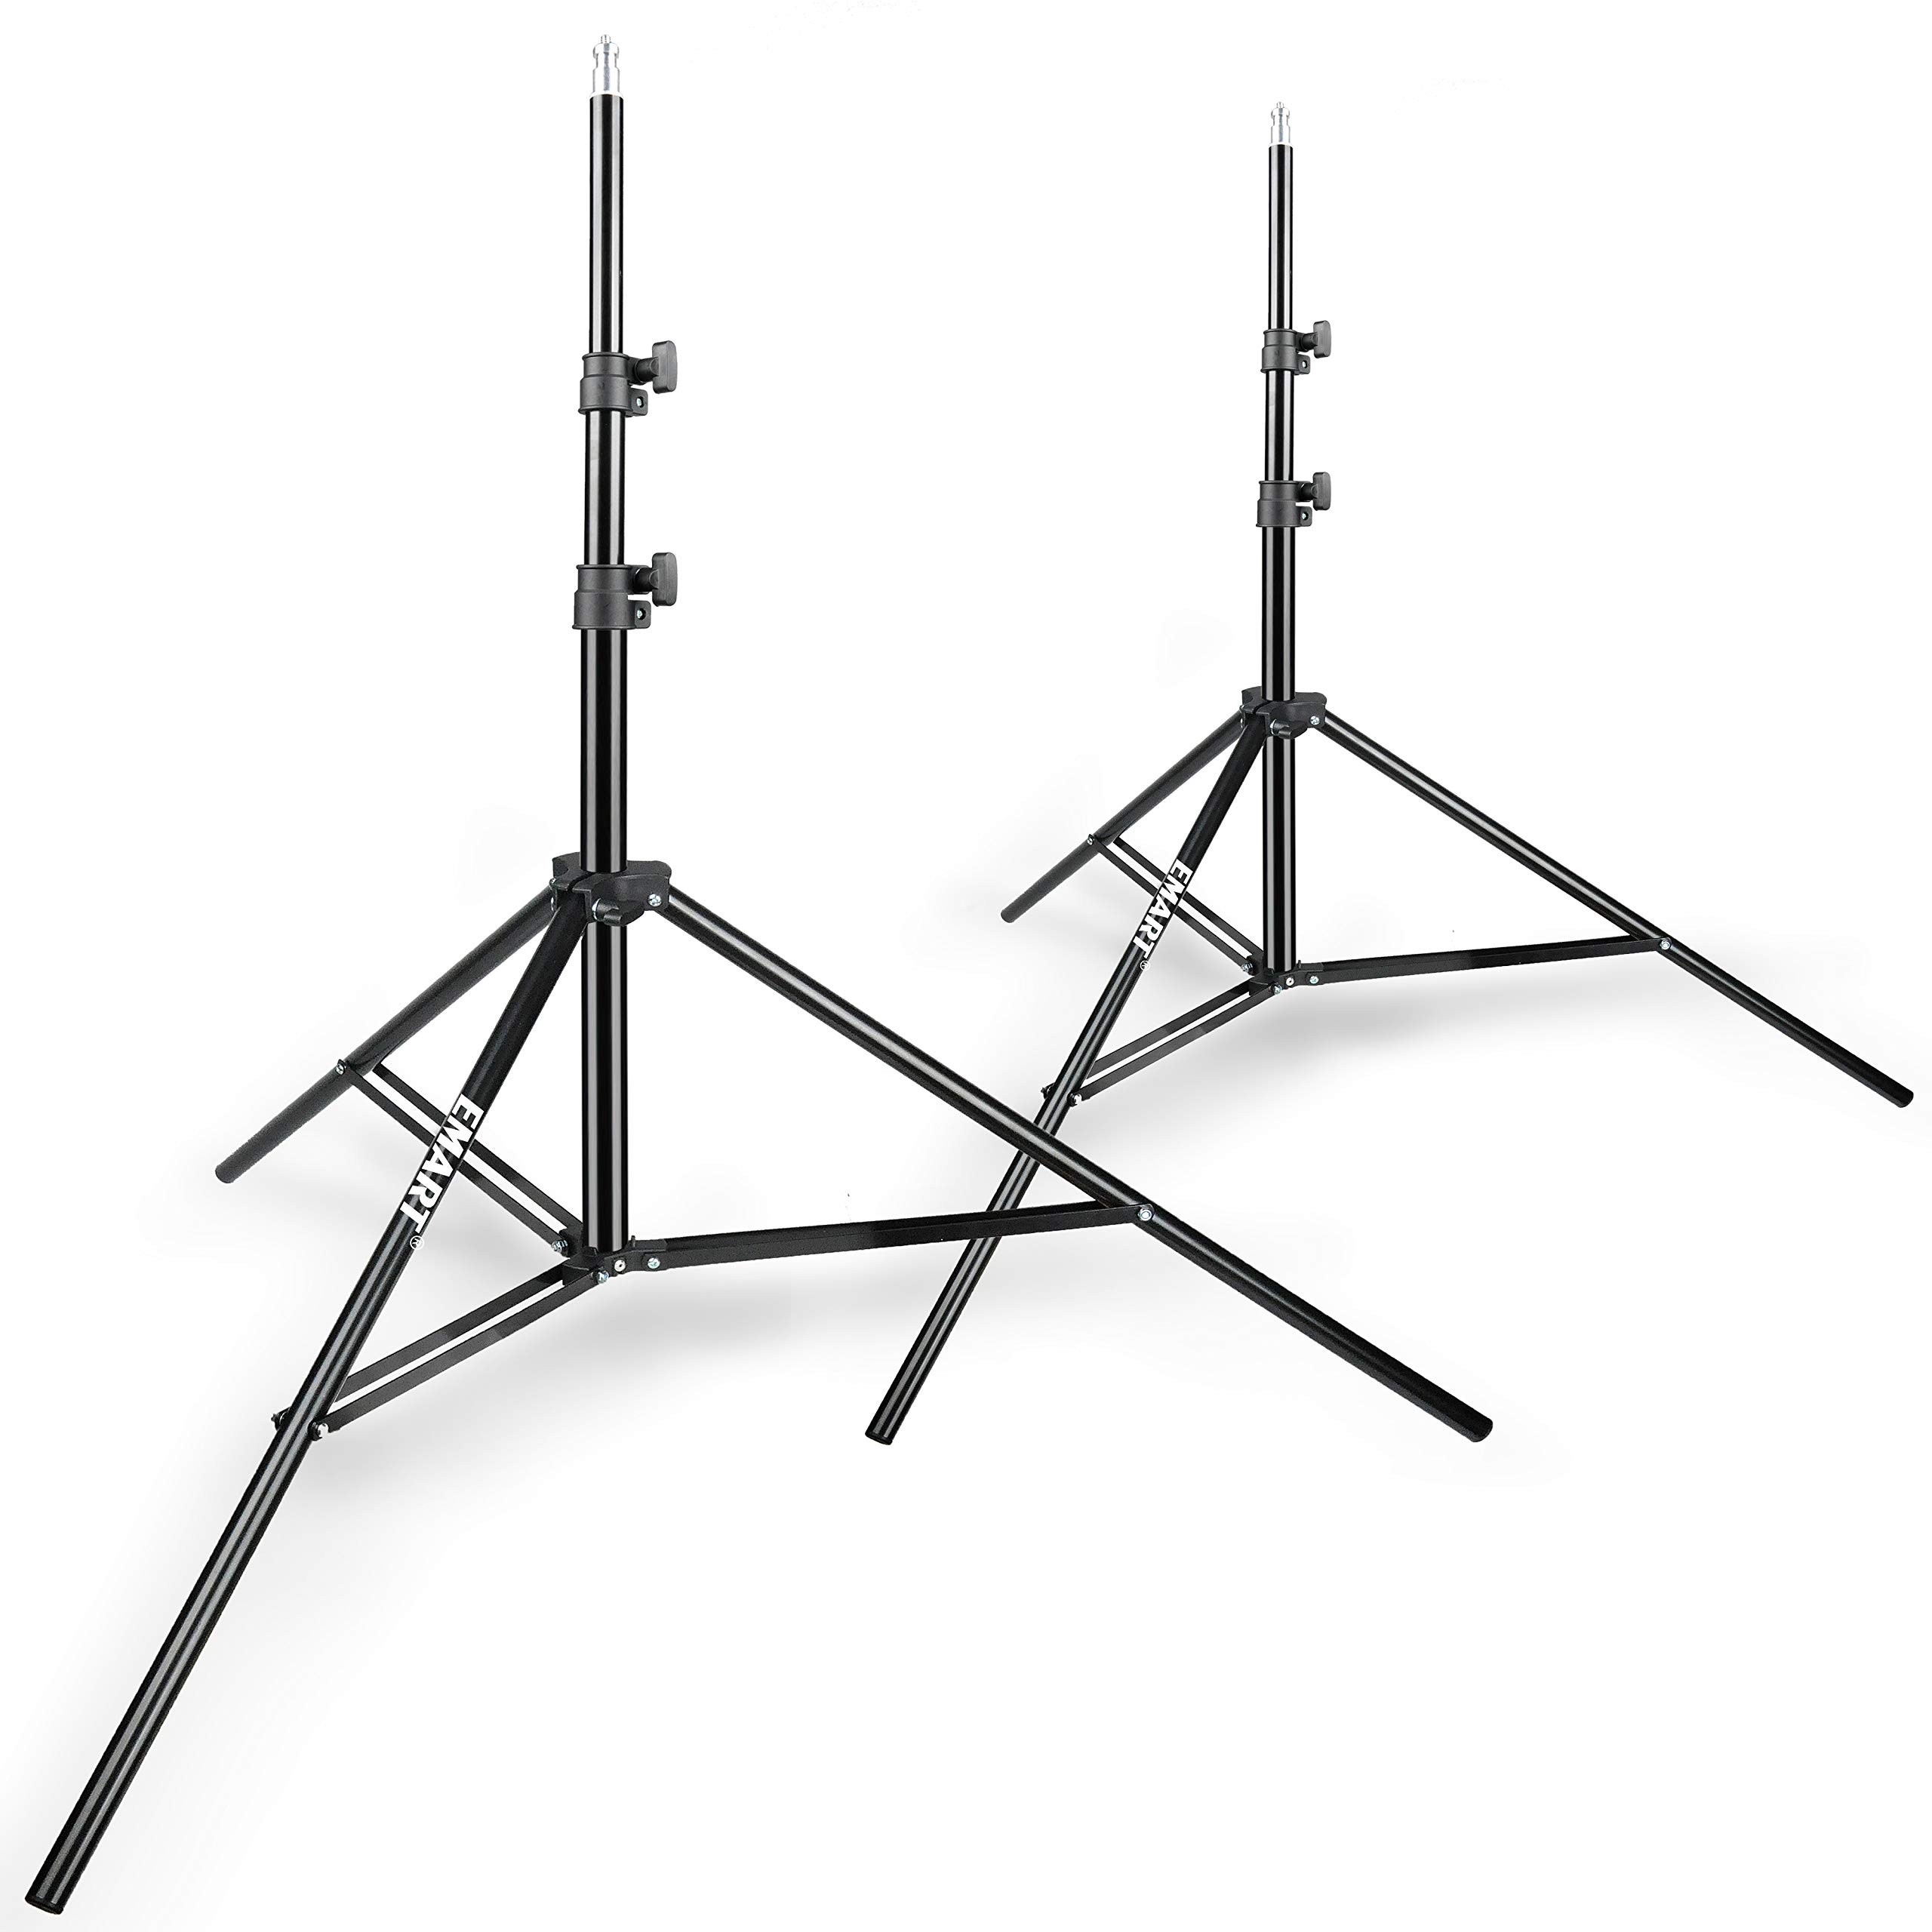 Emart 8.5ft Photography Light Stands for Photo Video Studio and Product Portrait Shooting - 2 Pack by EMART